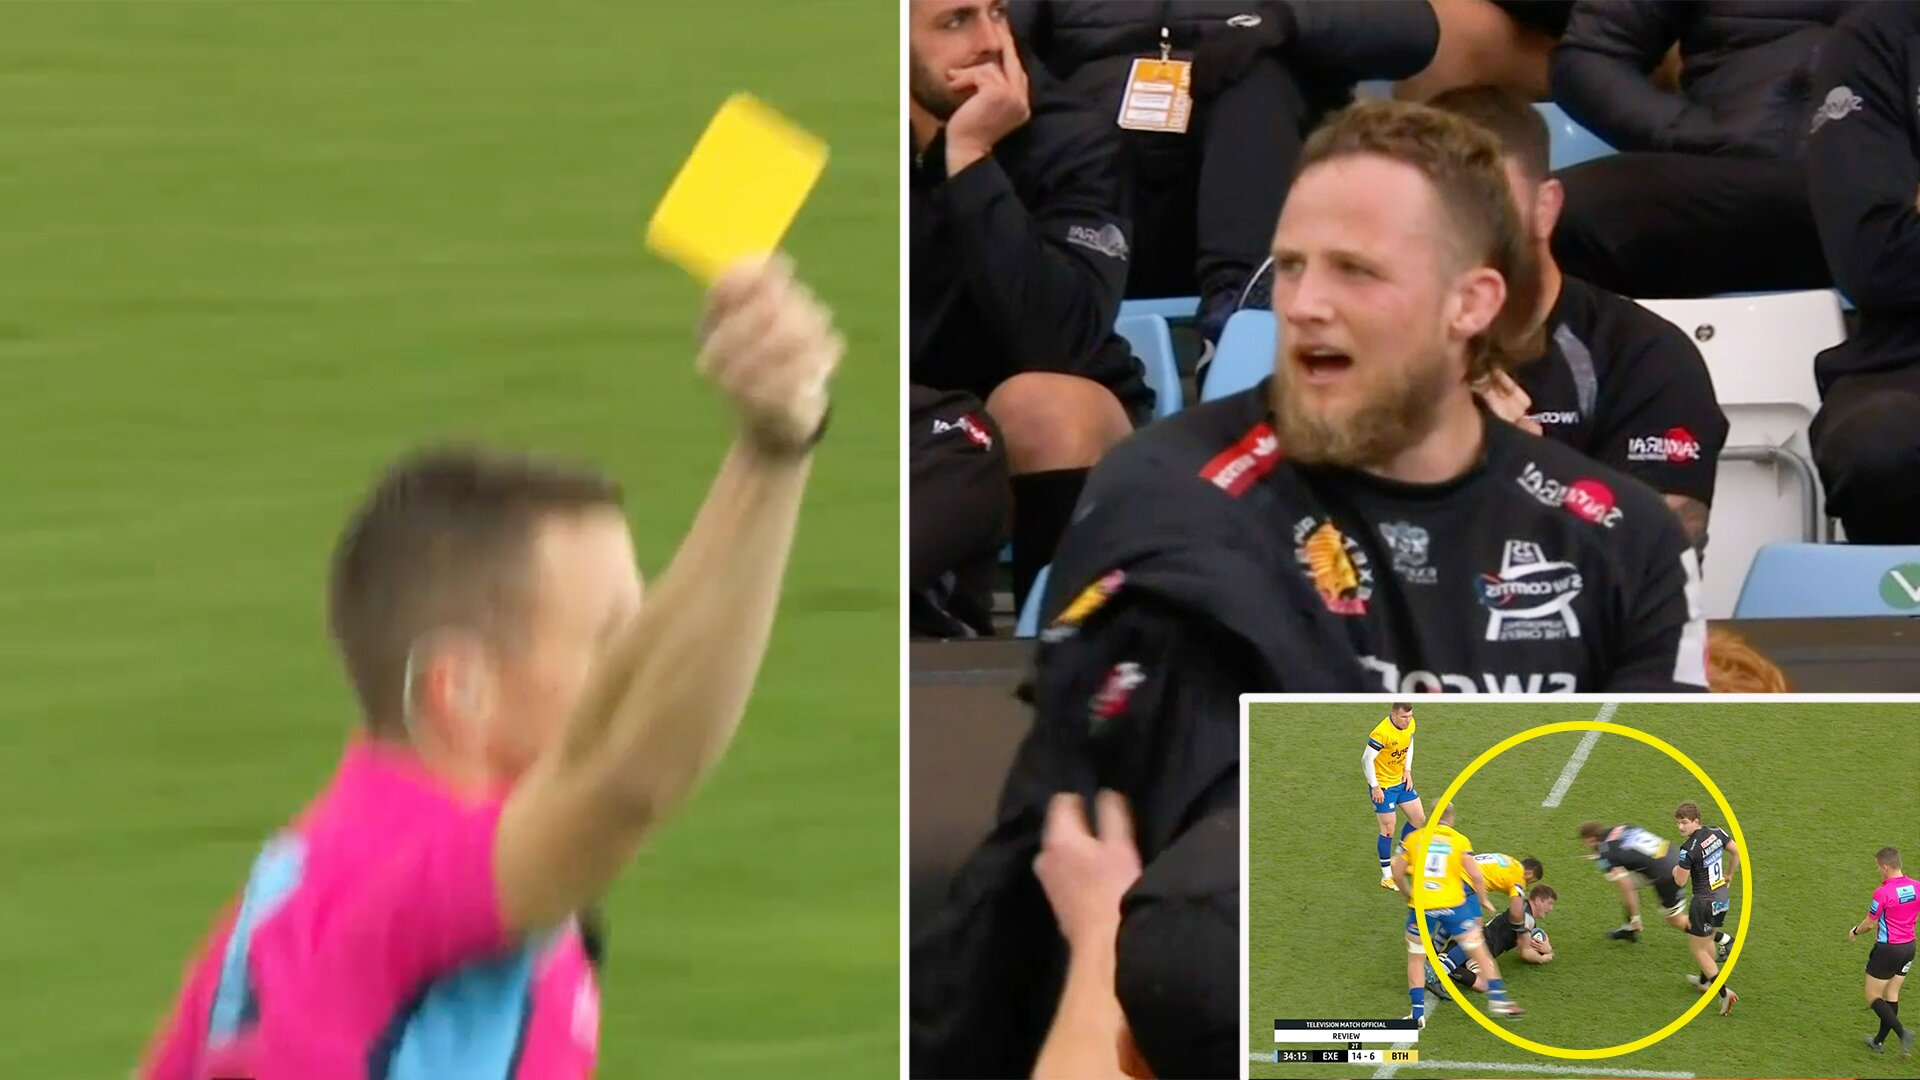 Jonny Hill avoids red card for sickening challenge in today's Premiership showdown